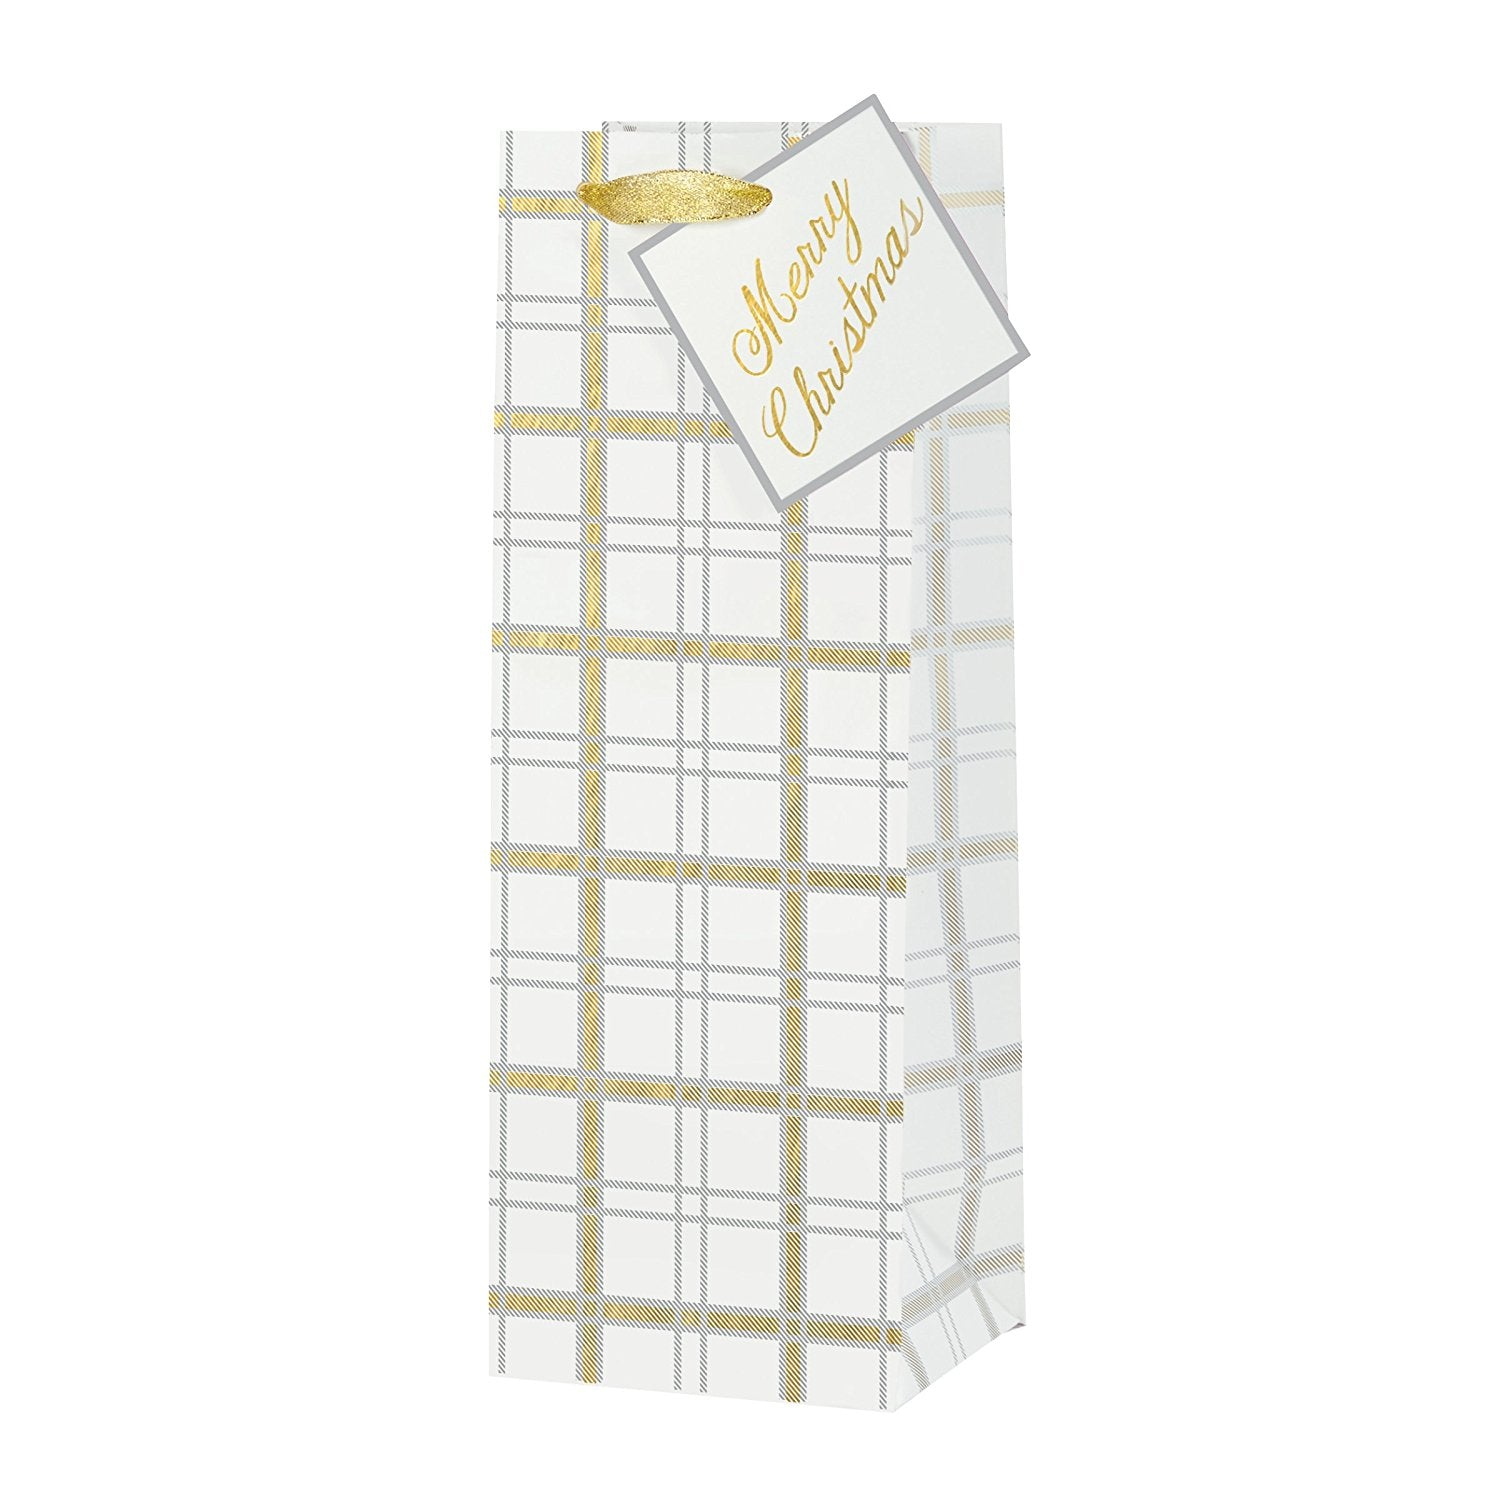 Embellished Bottle Gift Bag - Mixed Metallic Plaid, CRG-CR Gibson, Putti Fine Furnishings